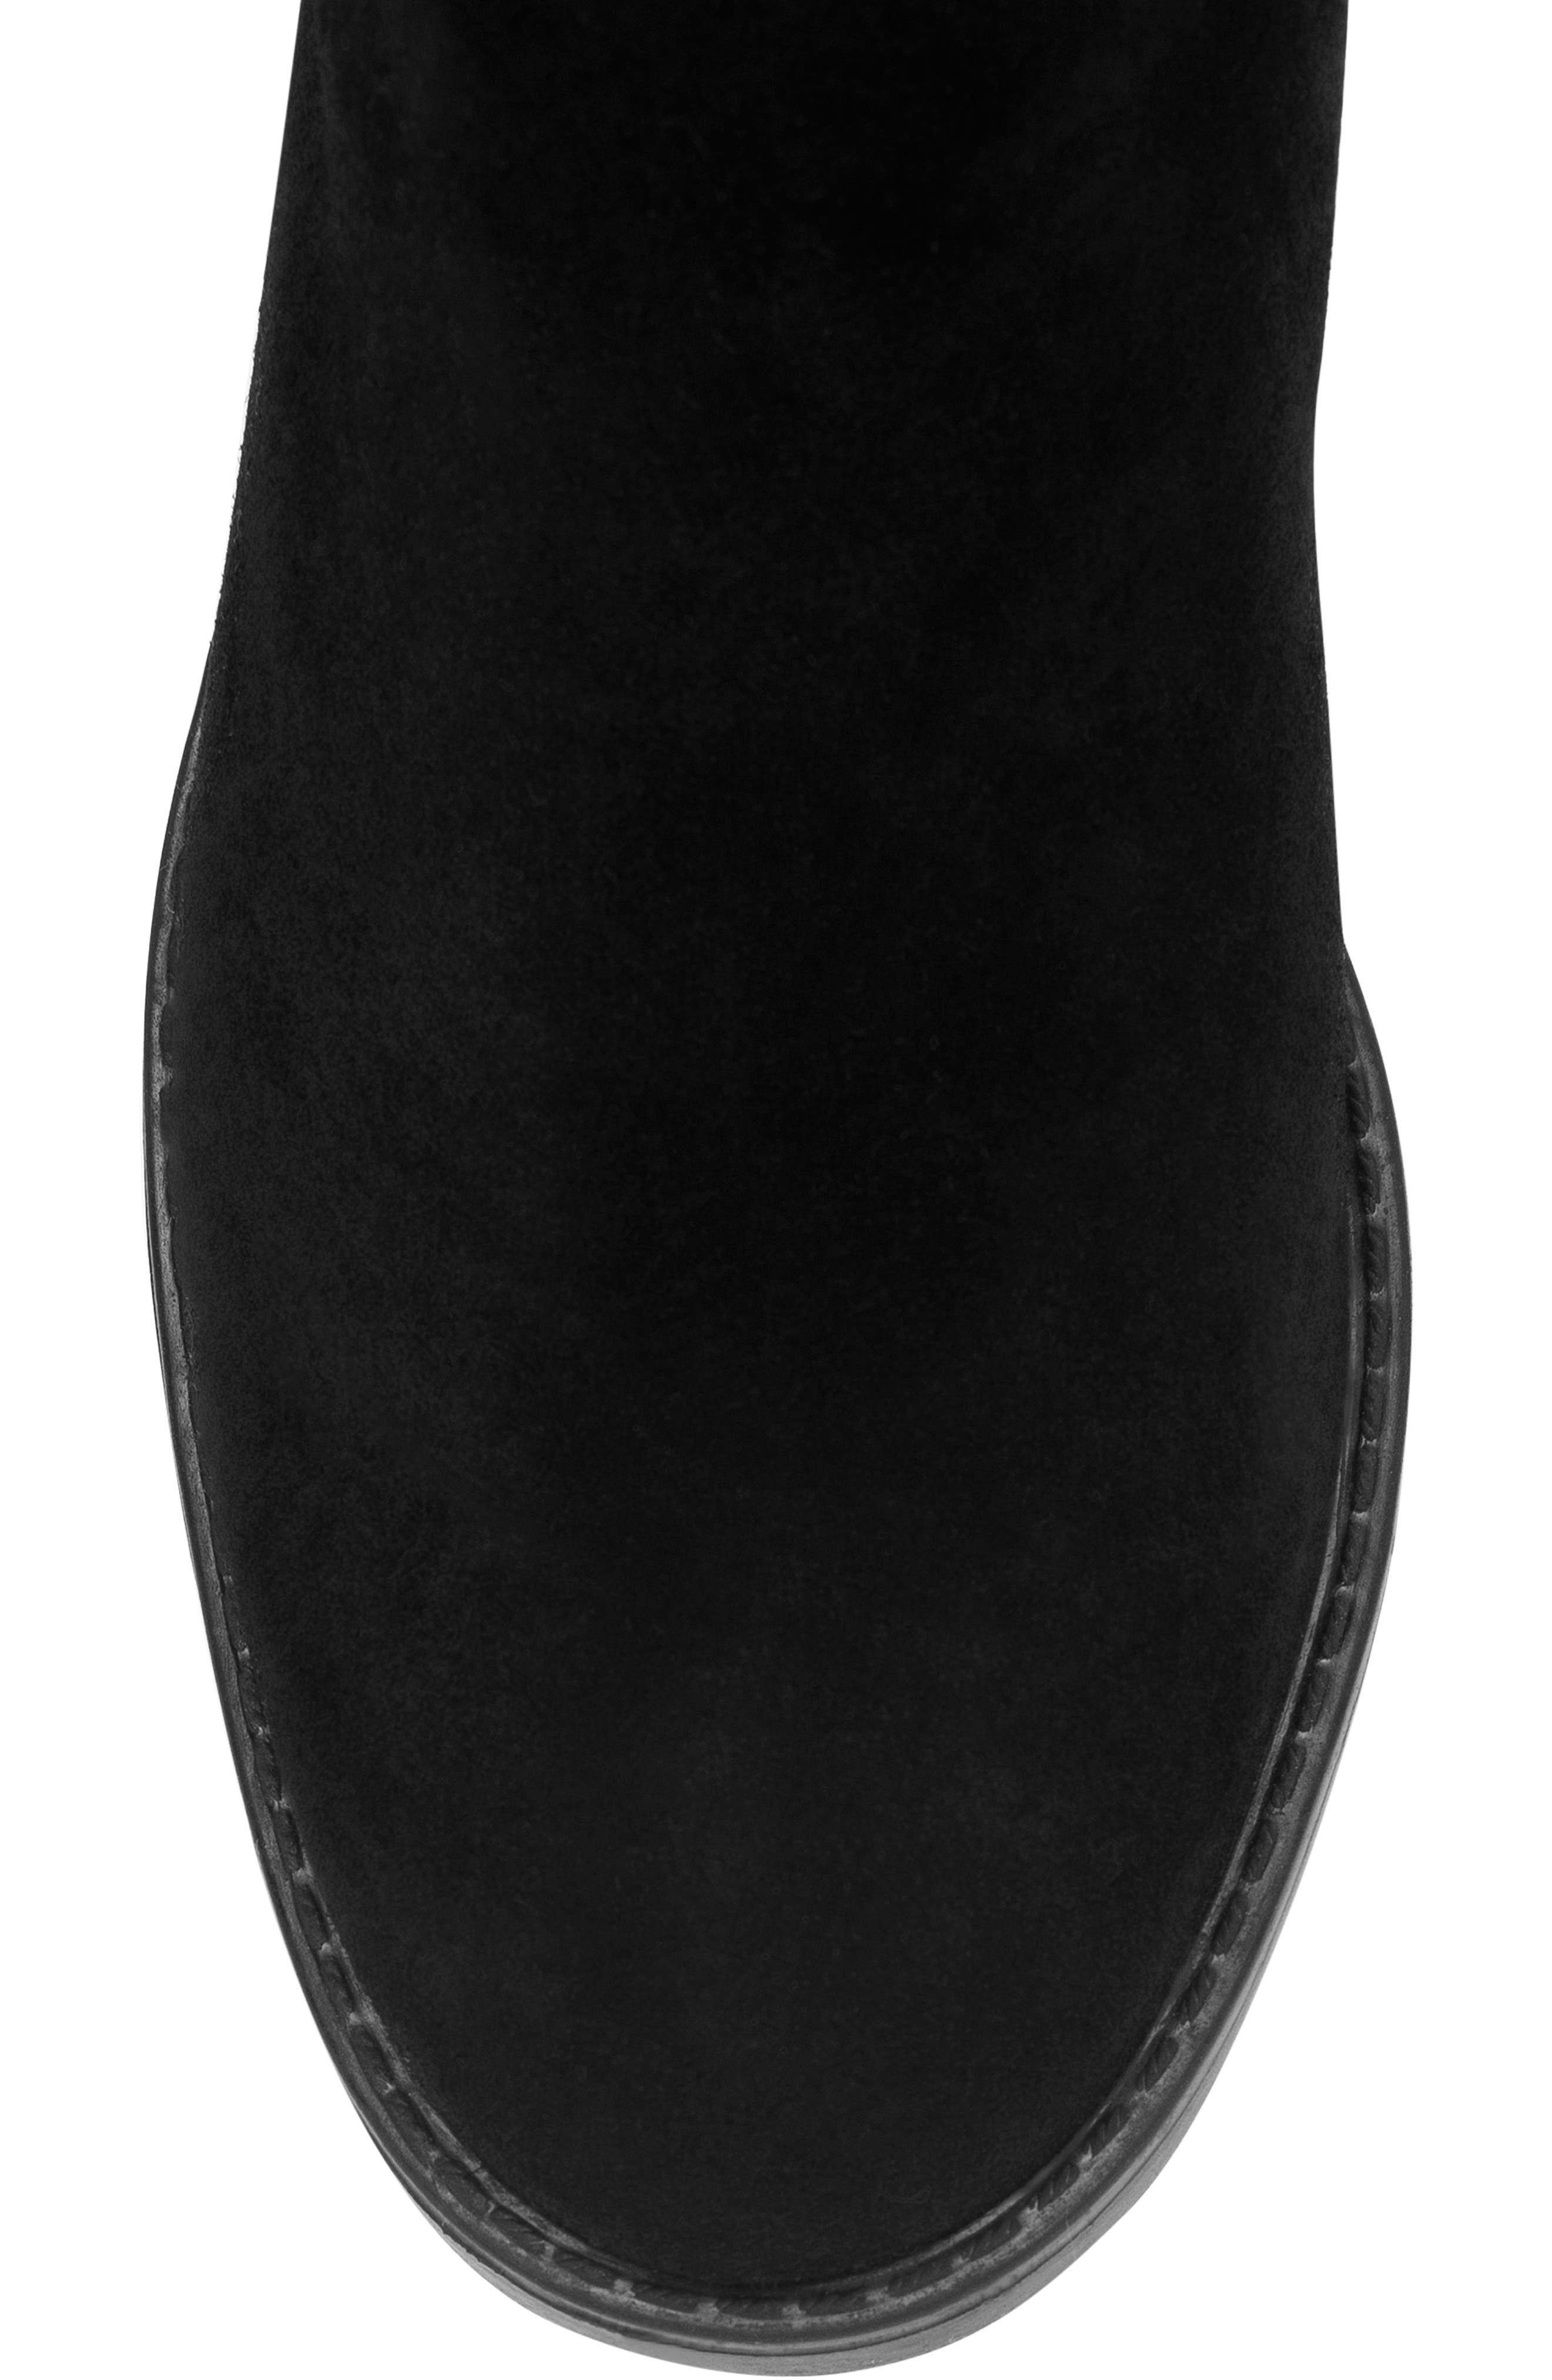 BLONDO, Ethos Over the Knee Waterproof Stretch Boot, Alternate thumbnail 5, color, BLACK SUEDE